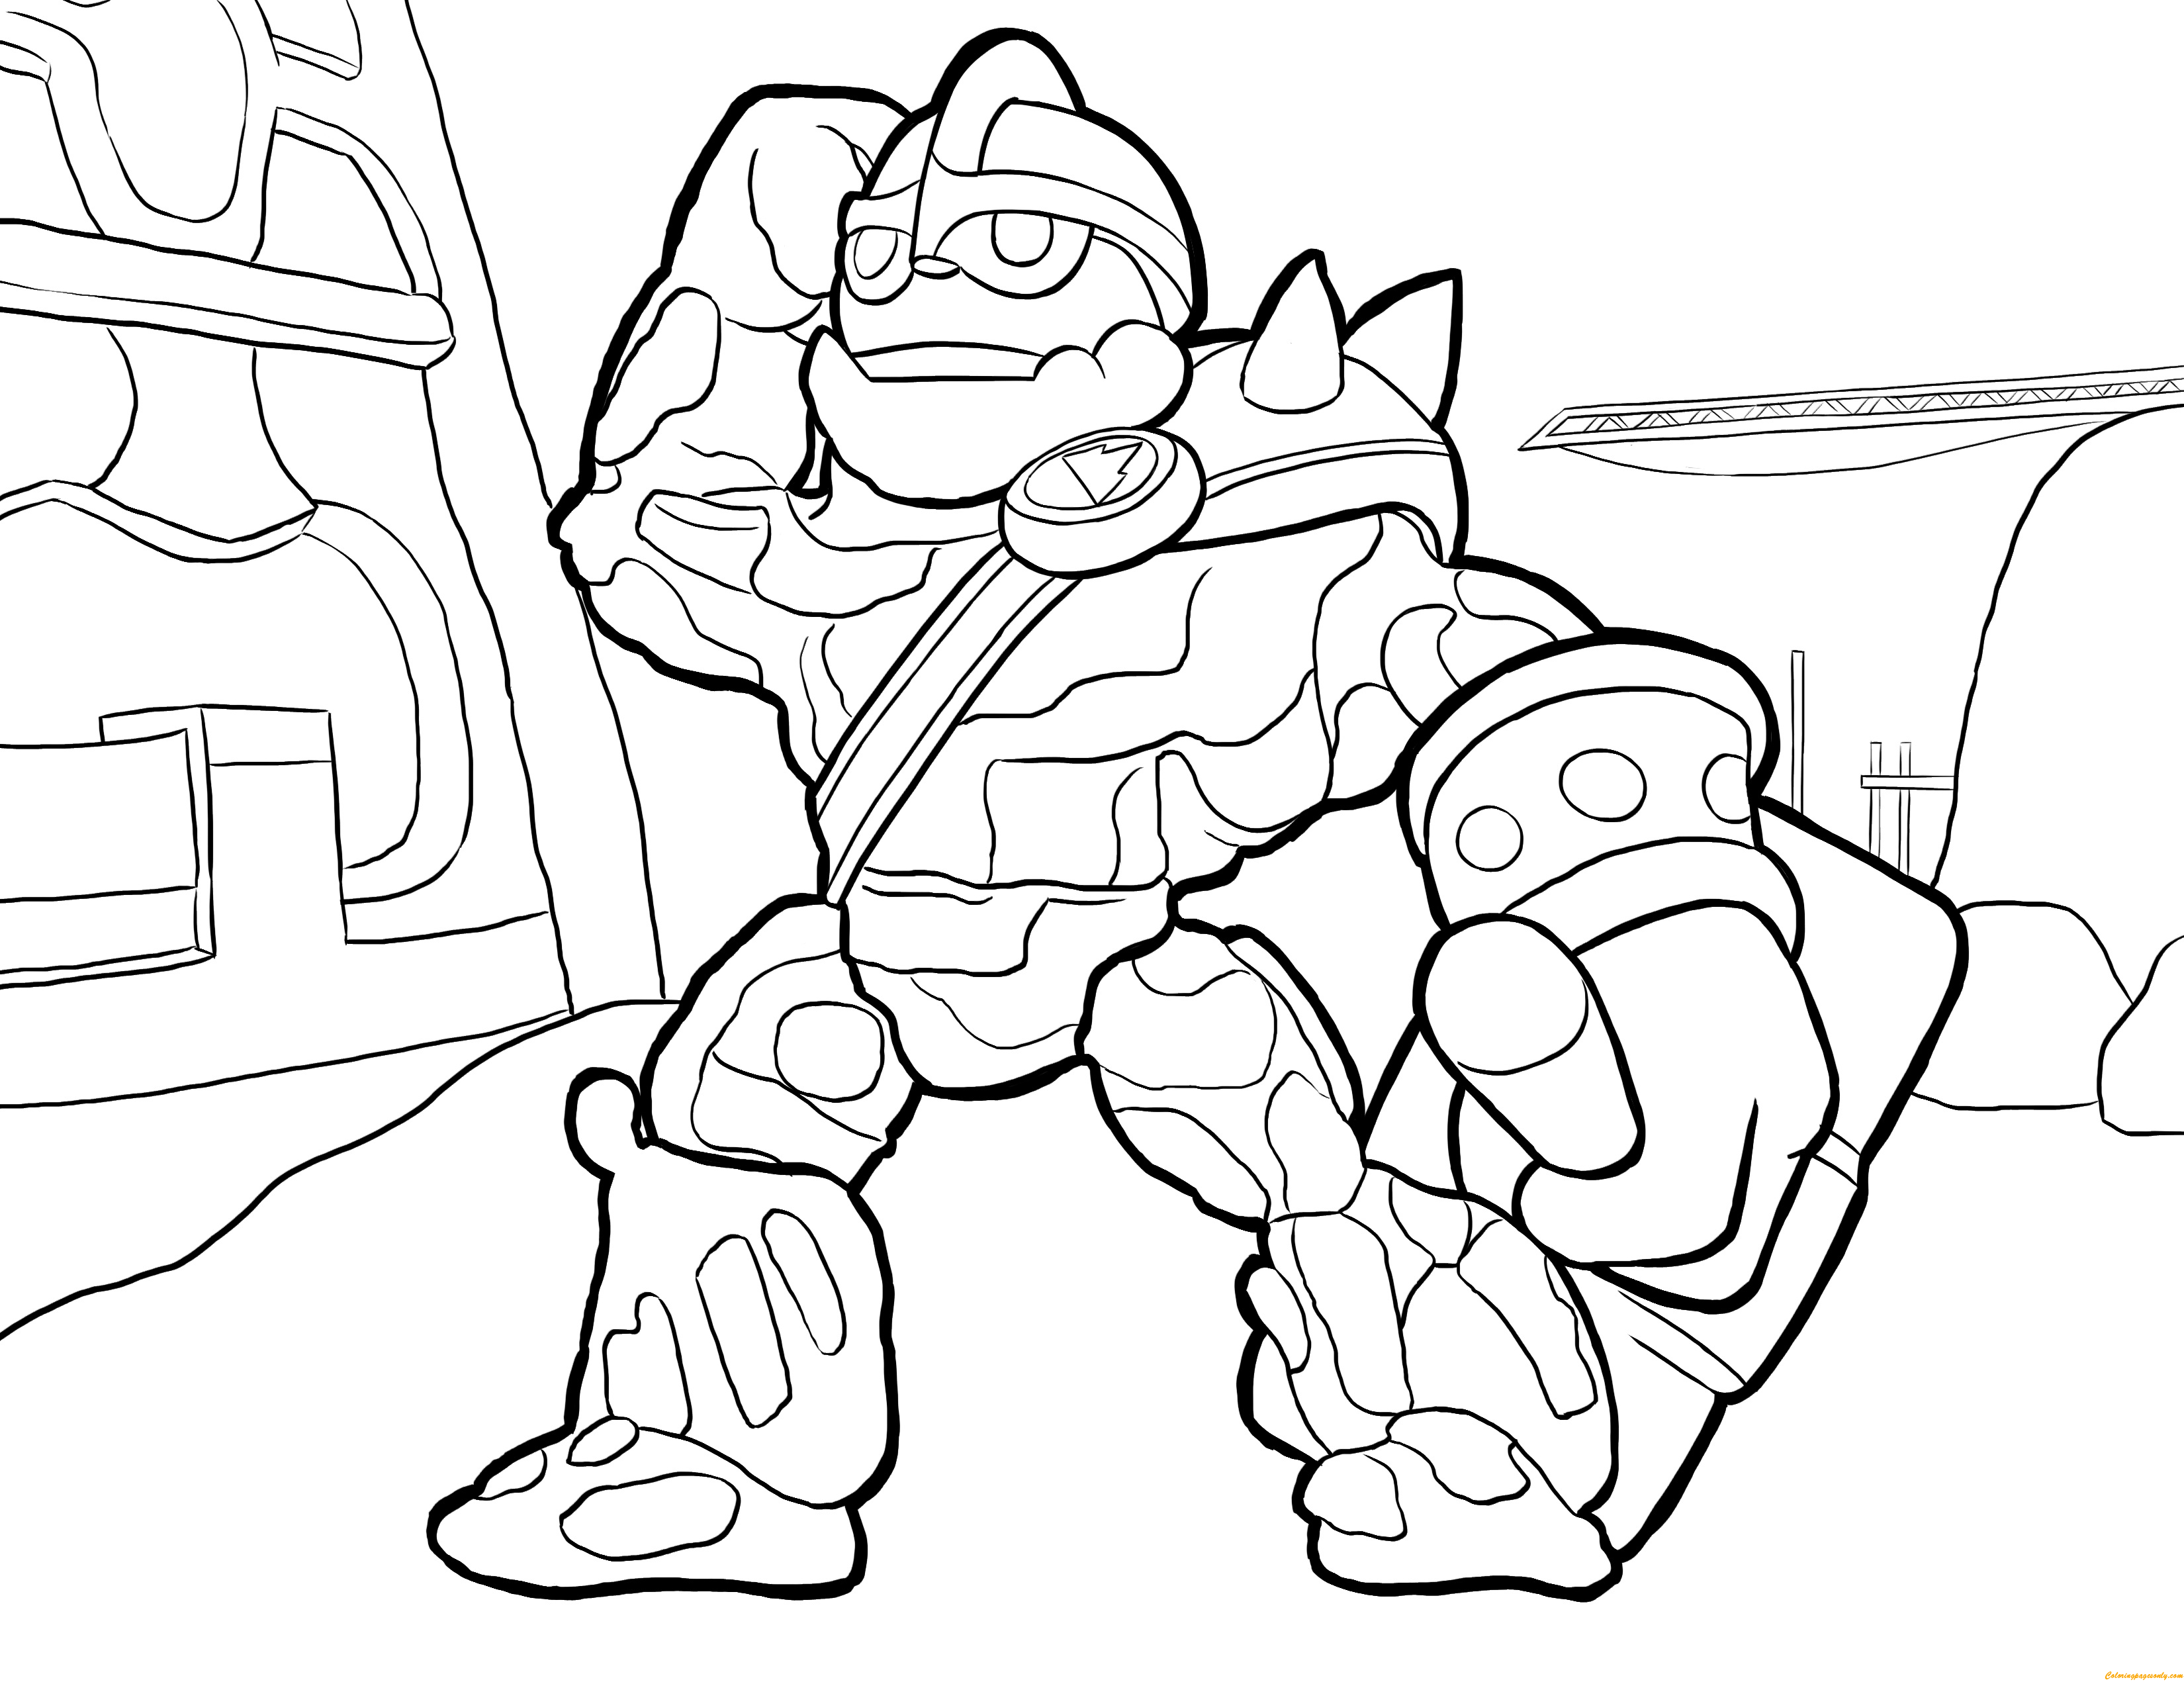 skylander coloring pages free - crusher skylanders coloring page free coloring pages online